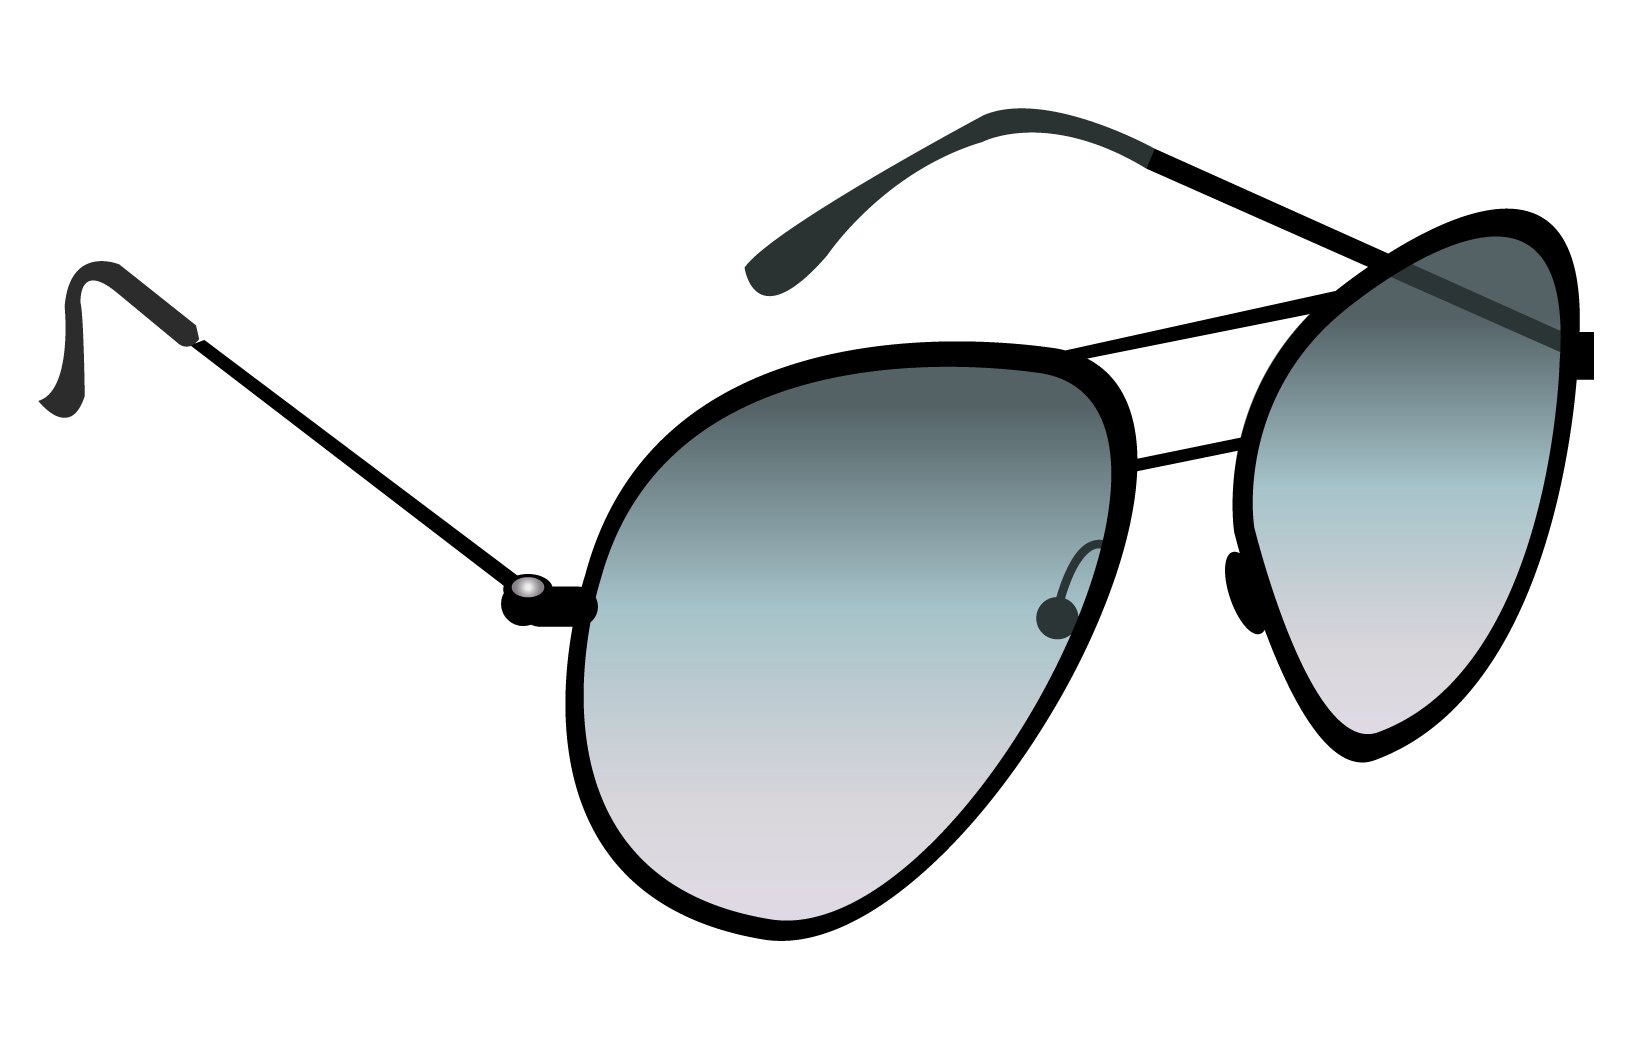 Sunglasses PNG images free download.